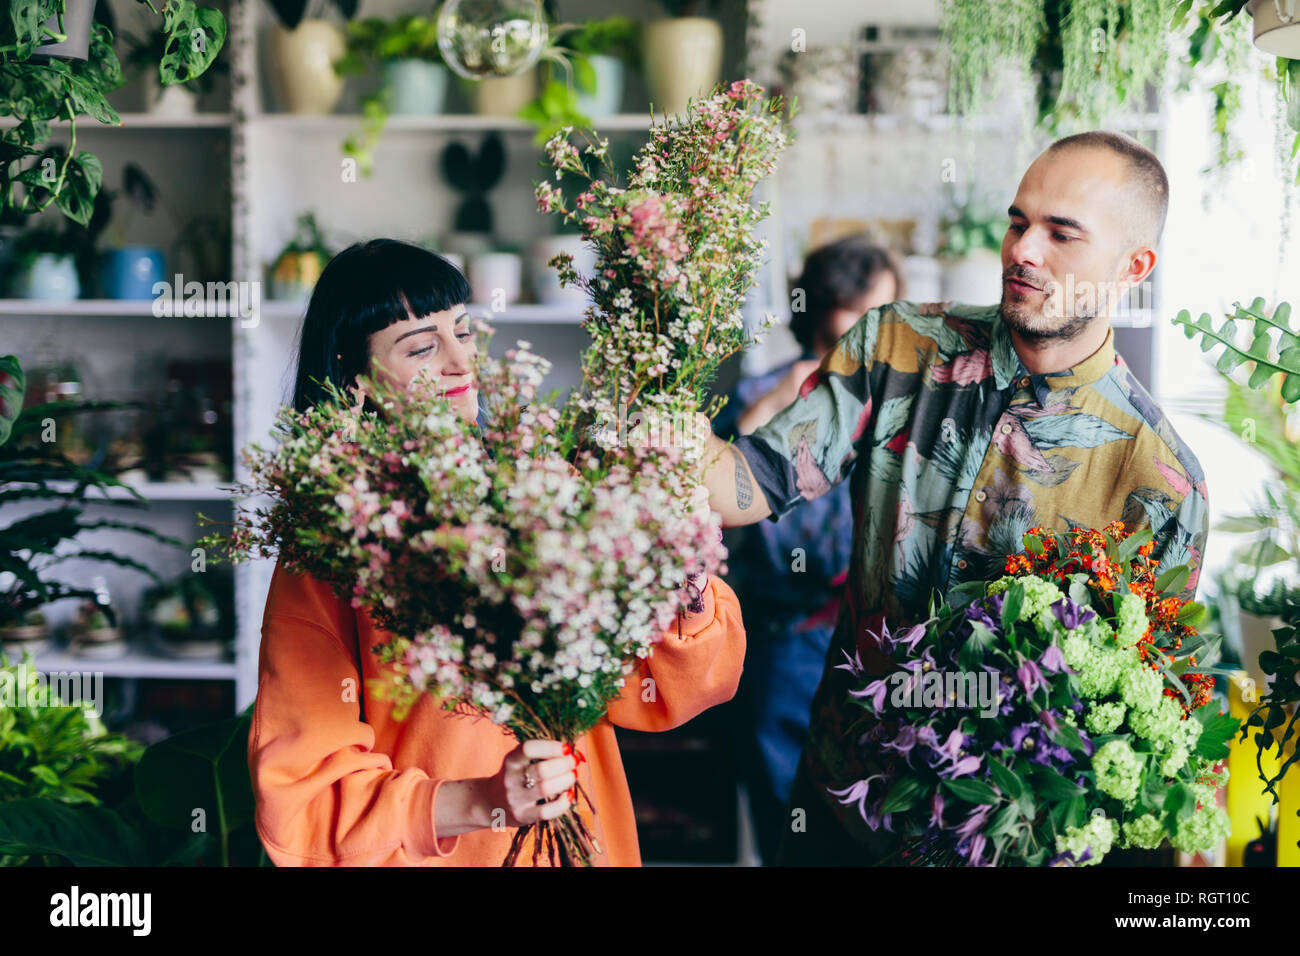 Man and woman working in the flower shop. Creative occupation, small business owners. Shopping and retailing. - Stock Image